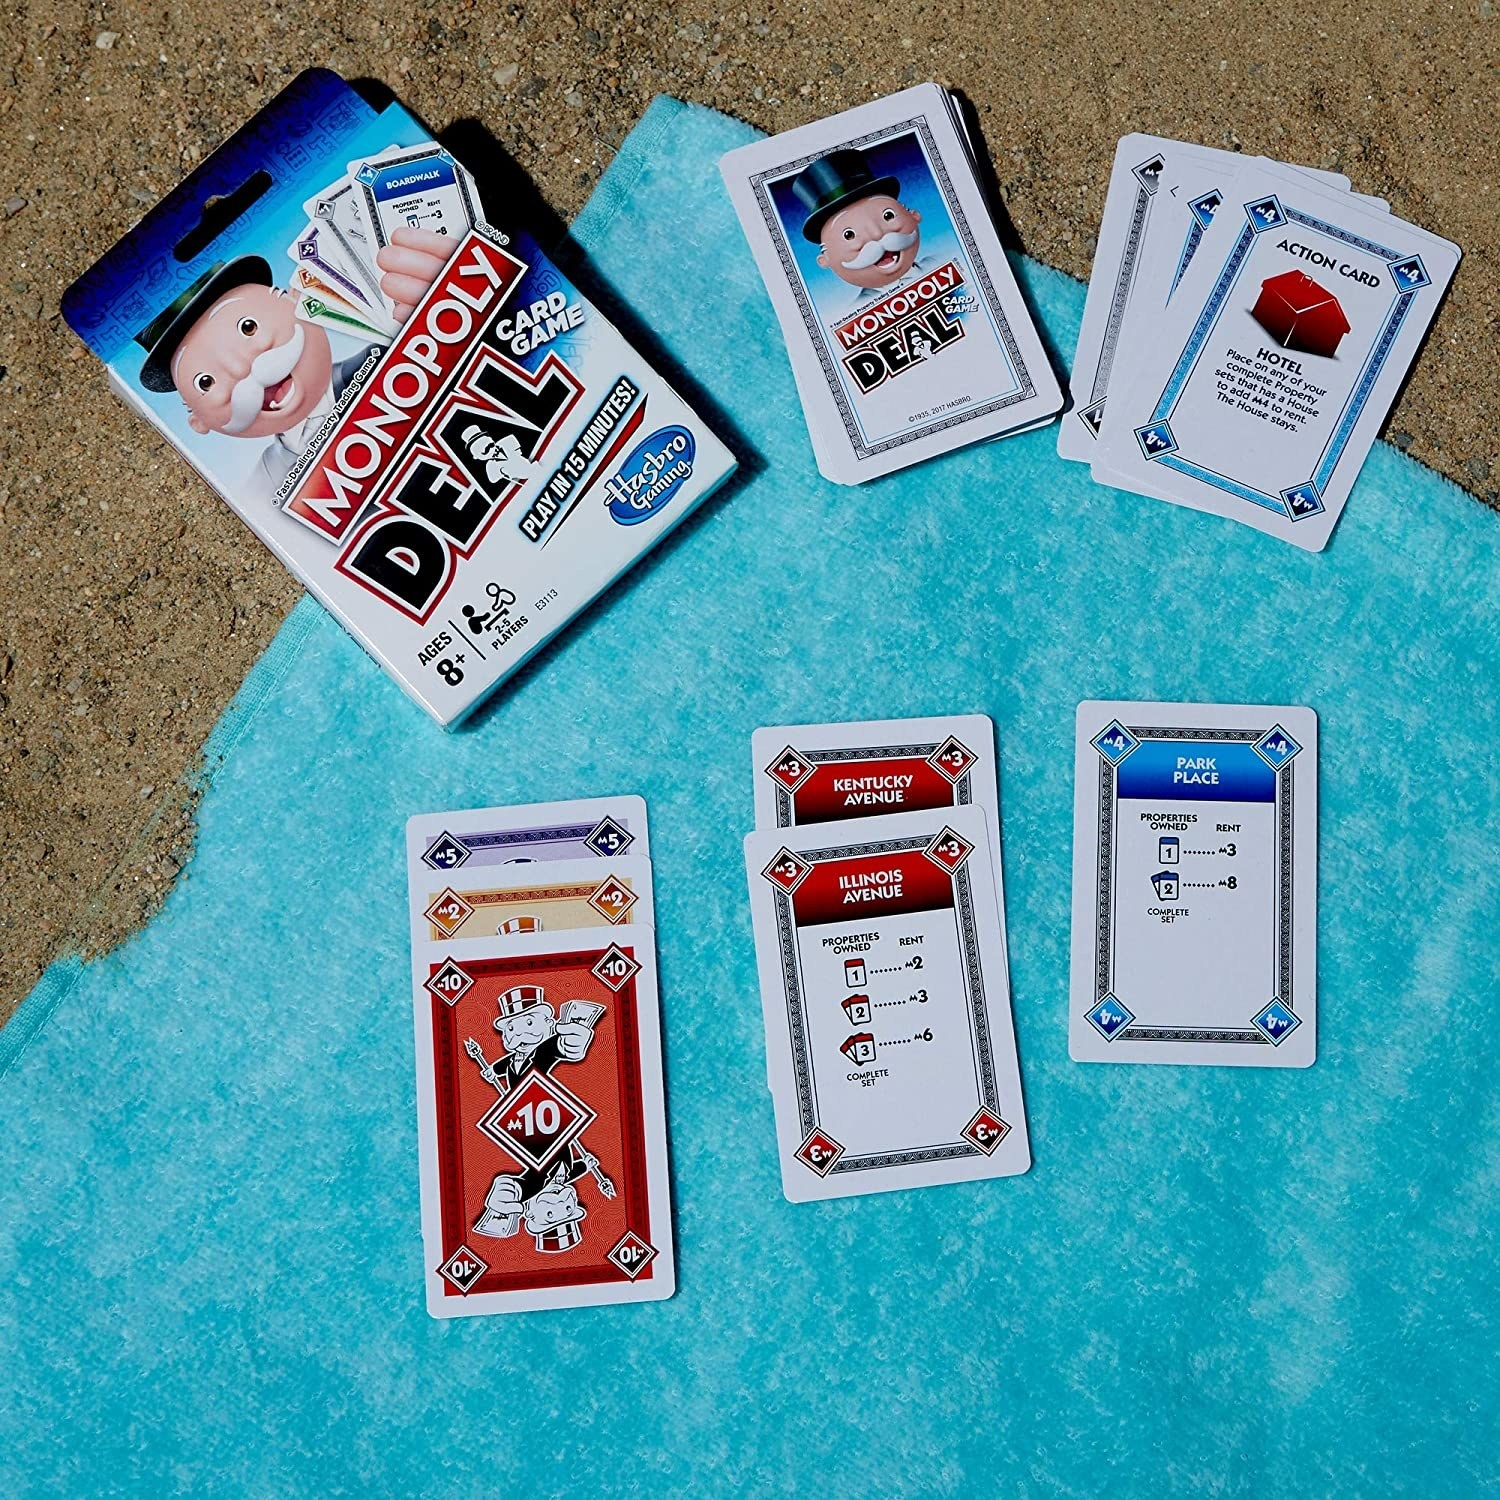 Several cards laid out on a beach towel